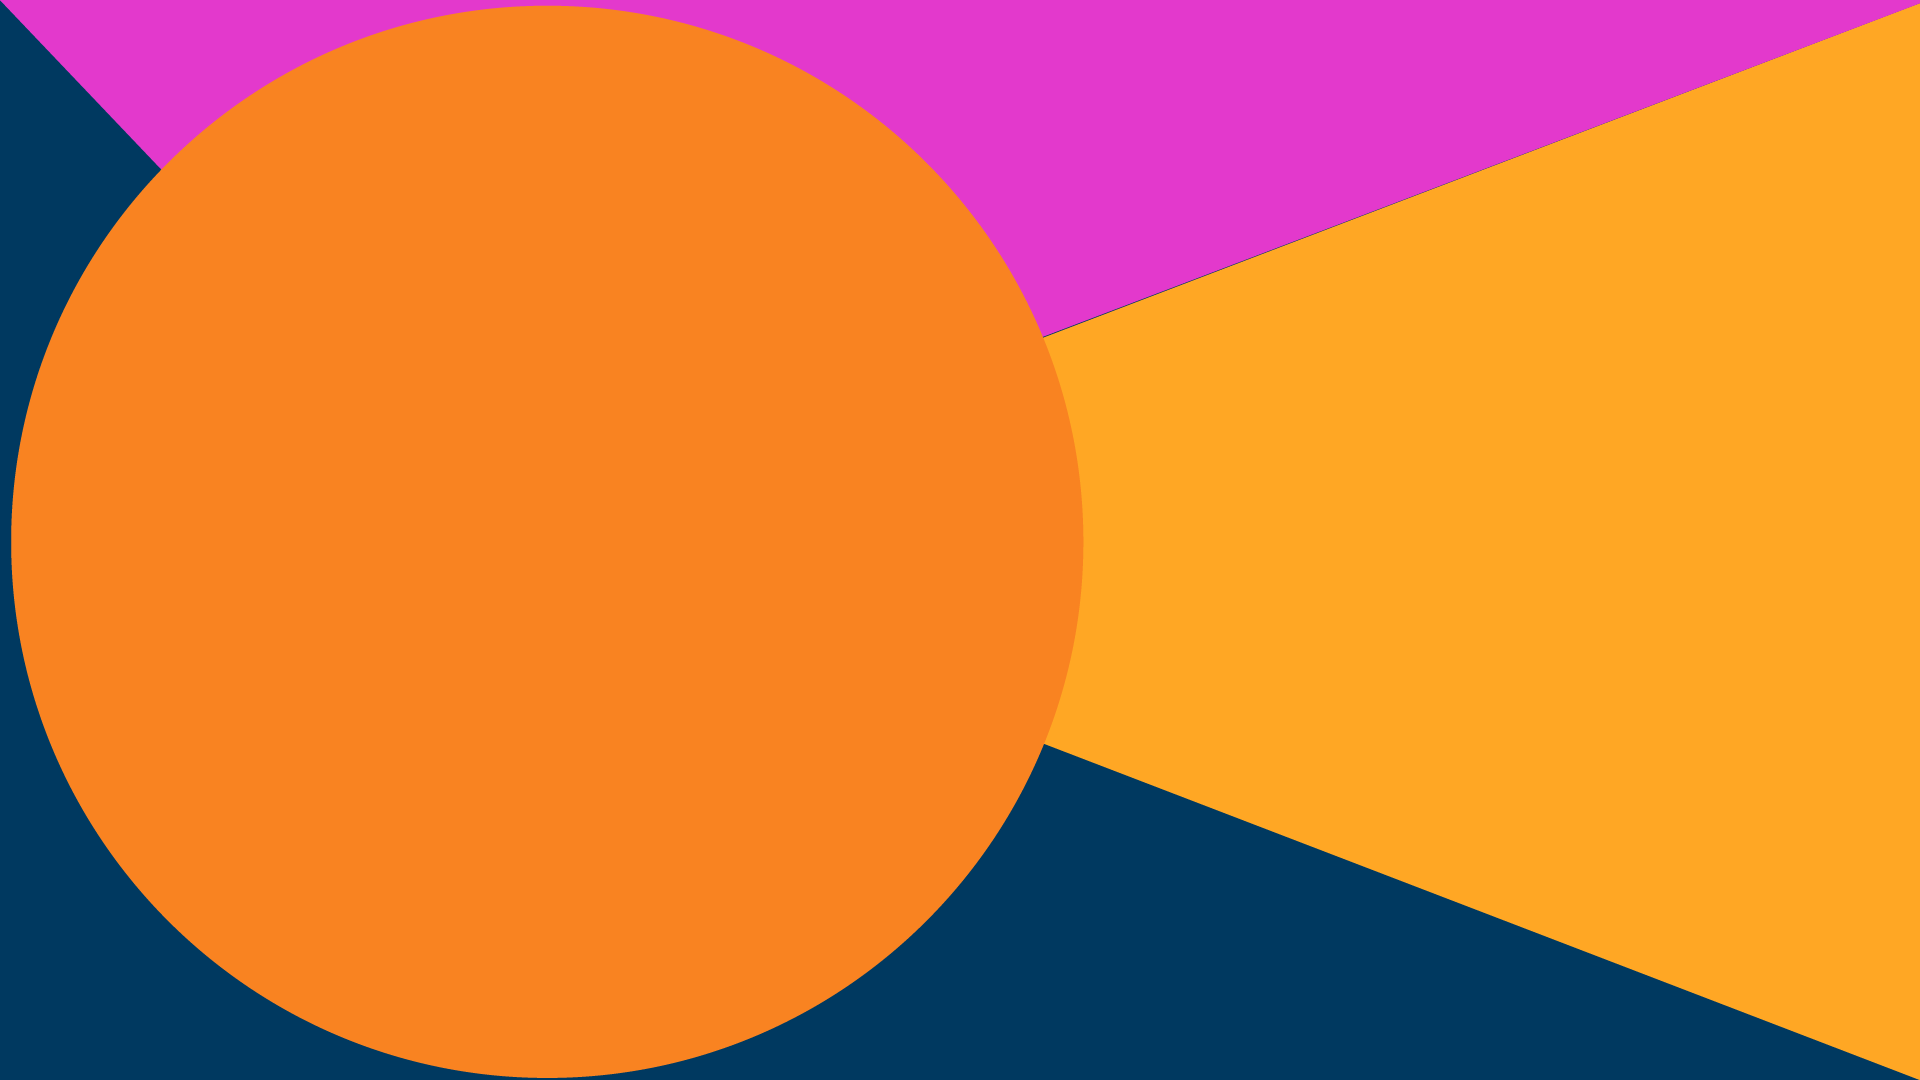 Circle-Triangle_Design.png